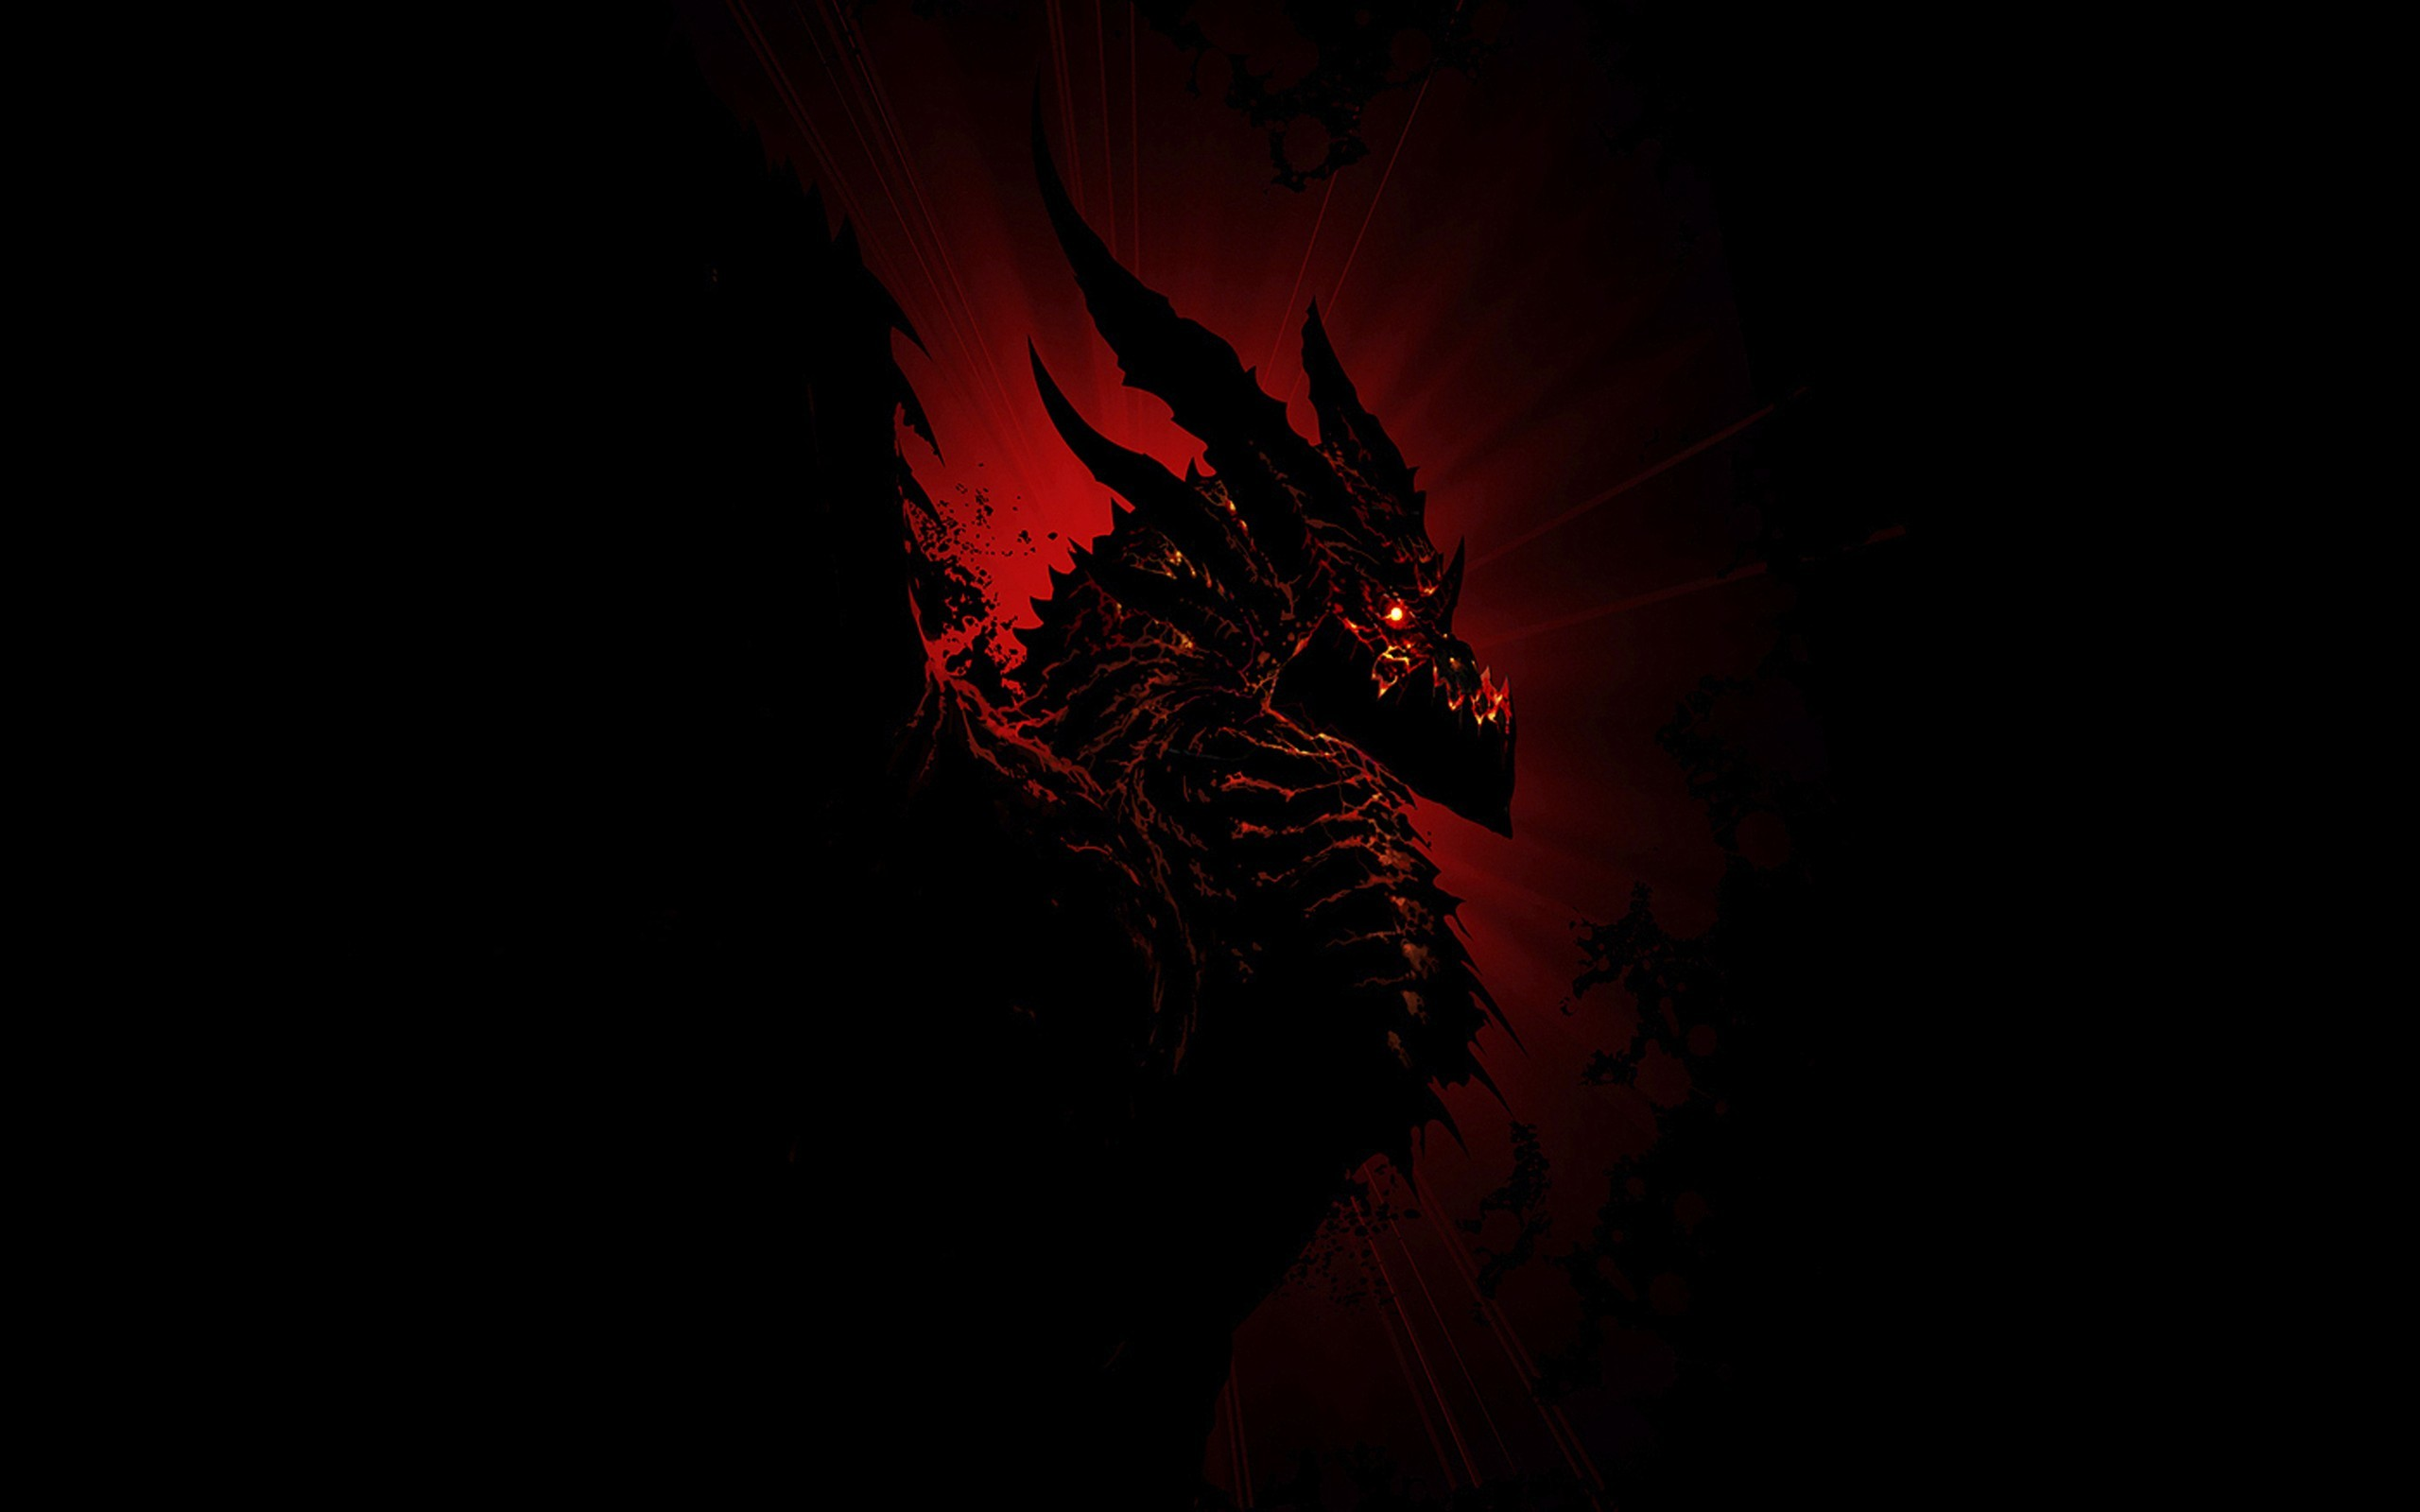 Black-and-Red-Dragon-Photo